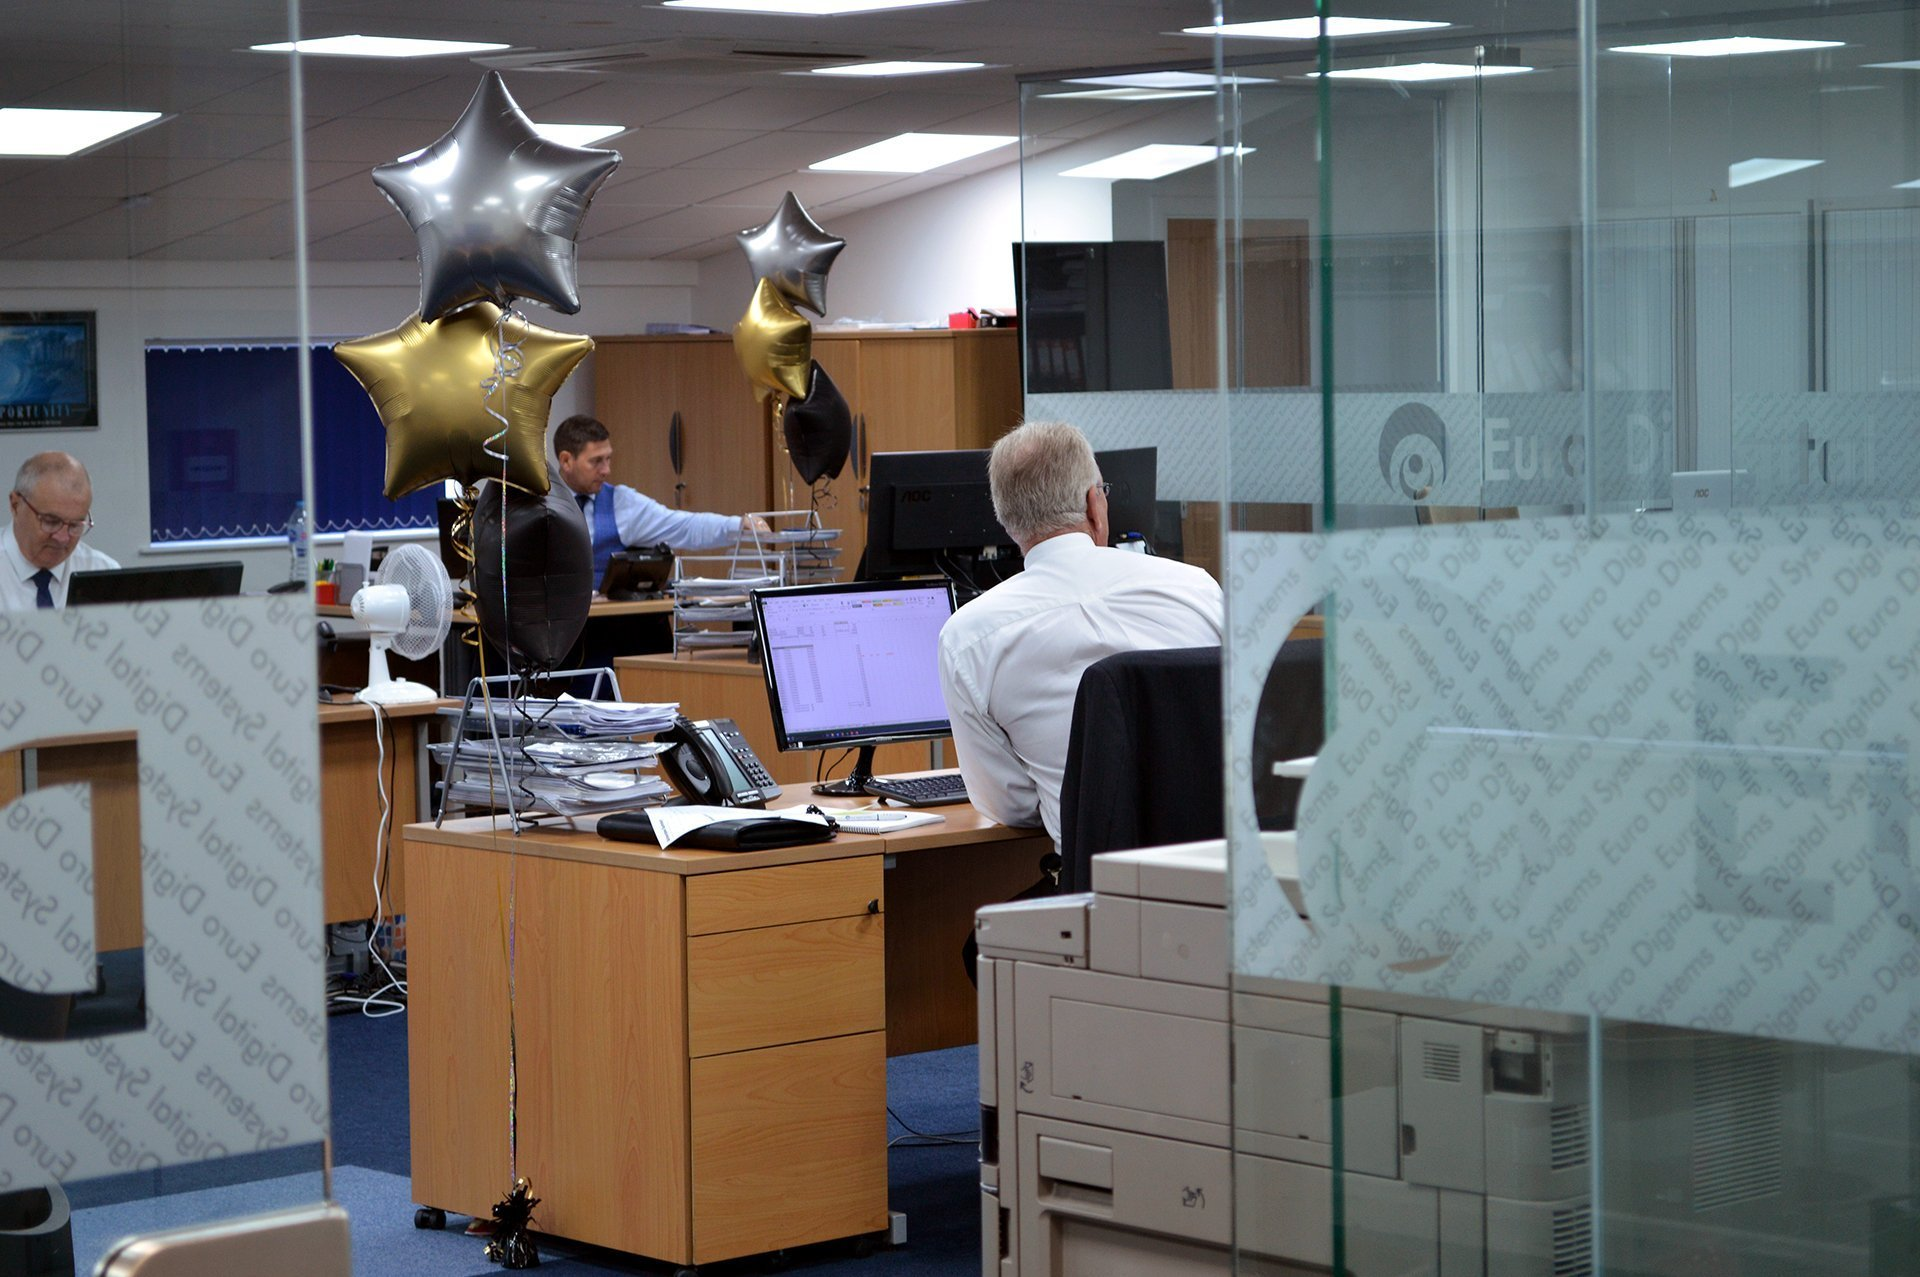 Sales Department @ Euro Digital Systems